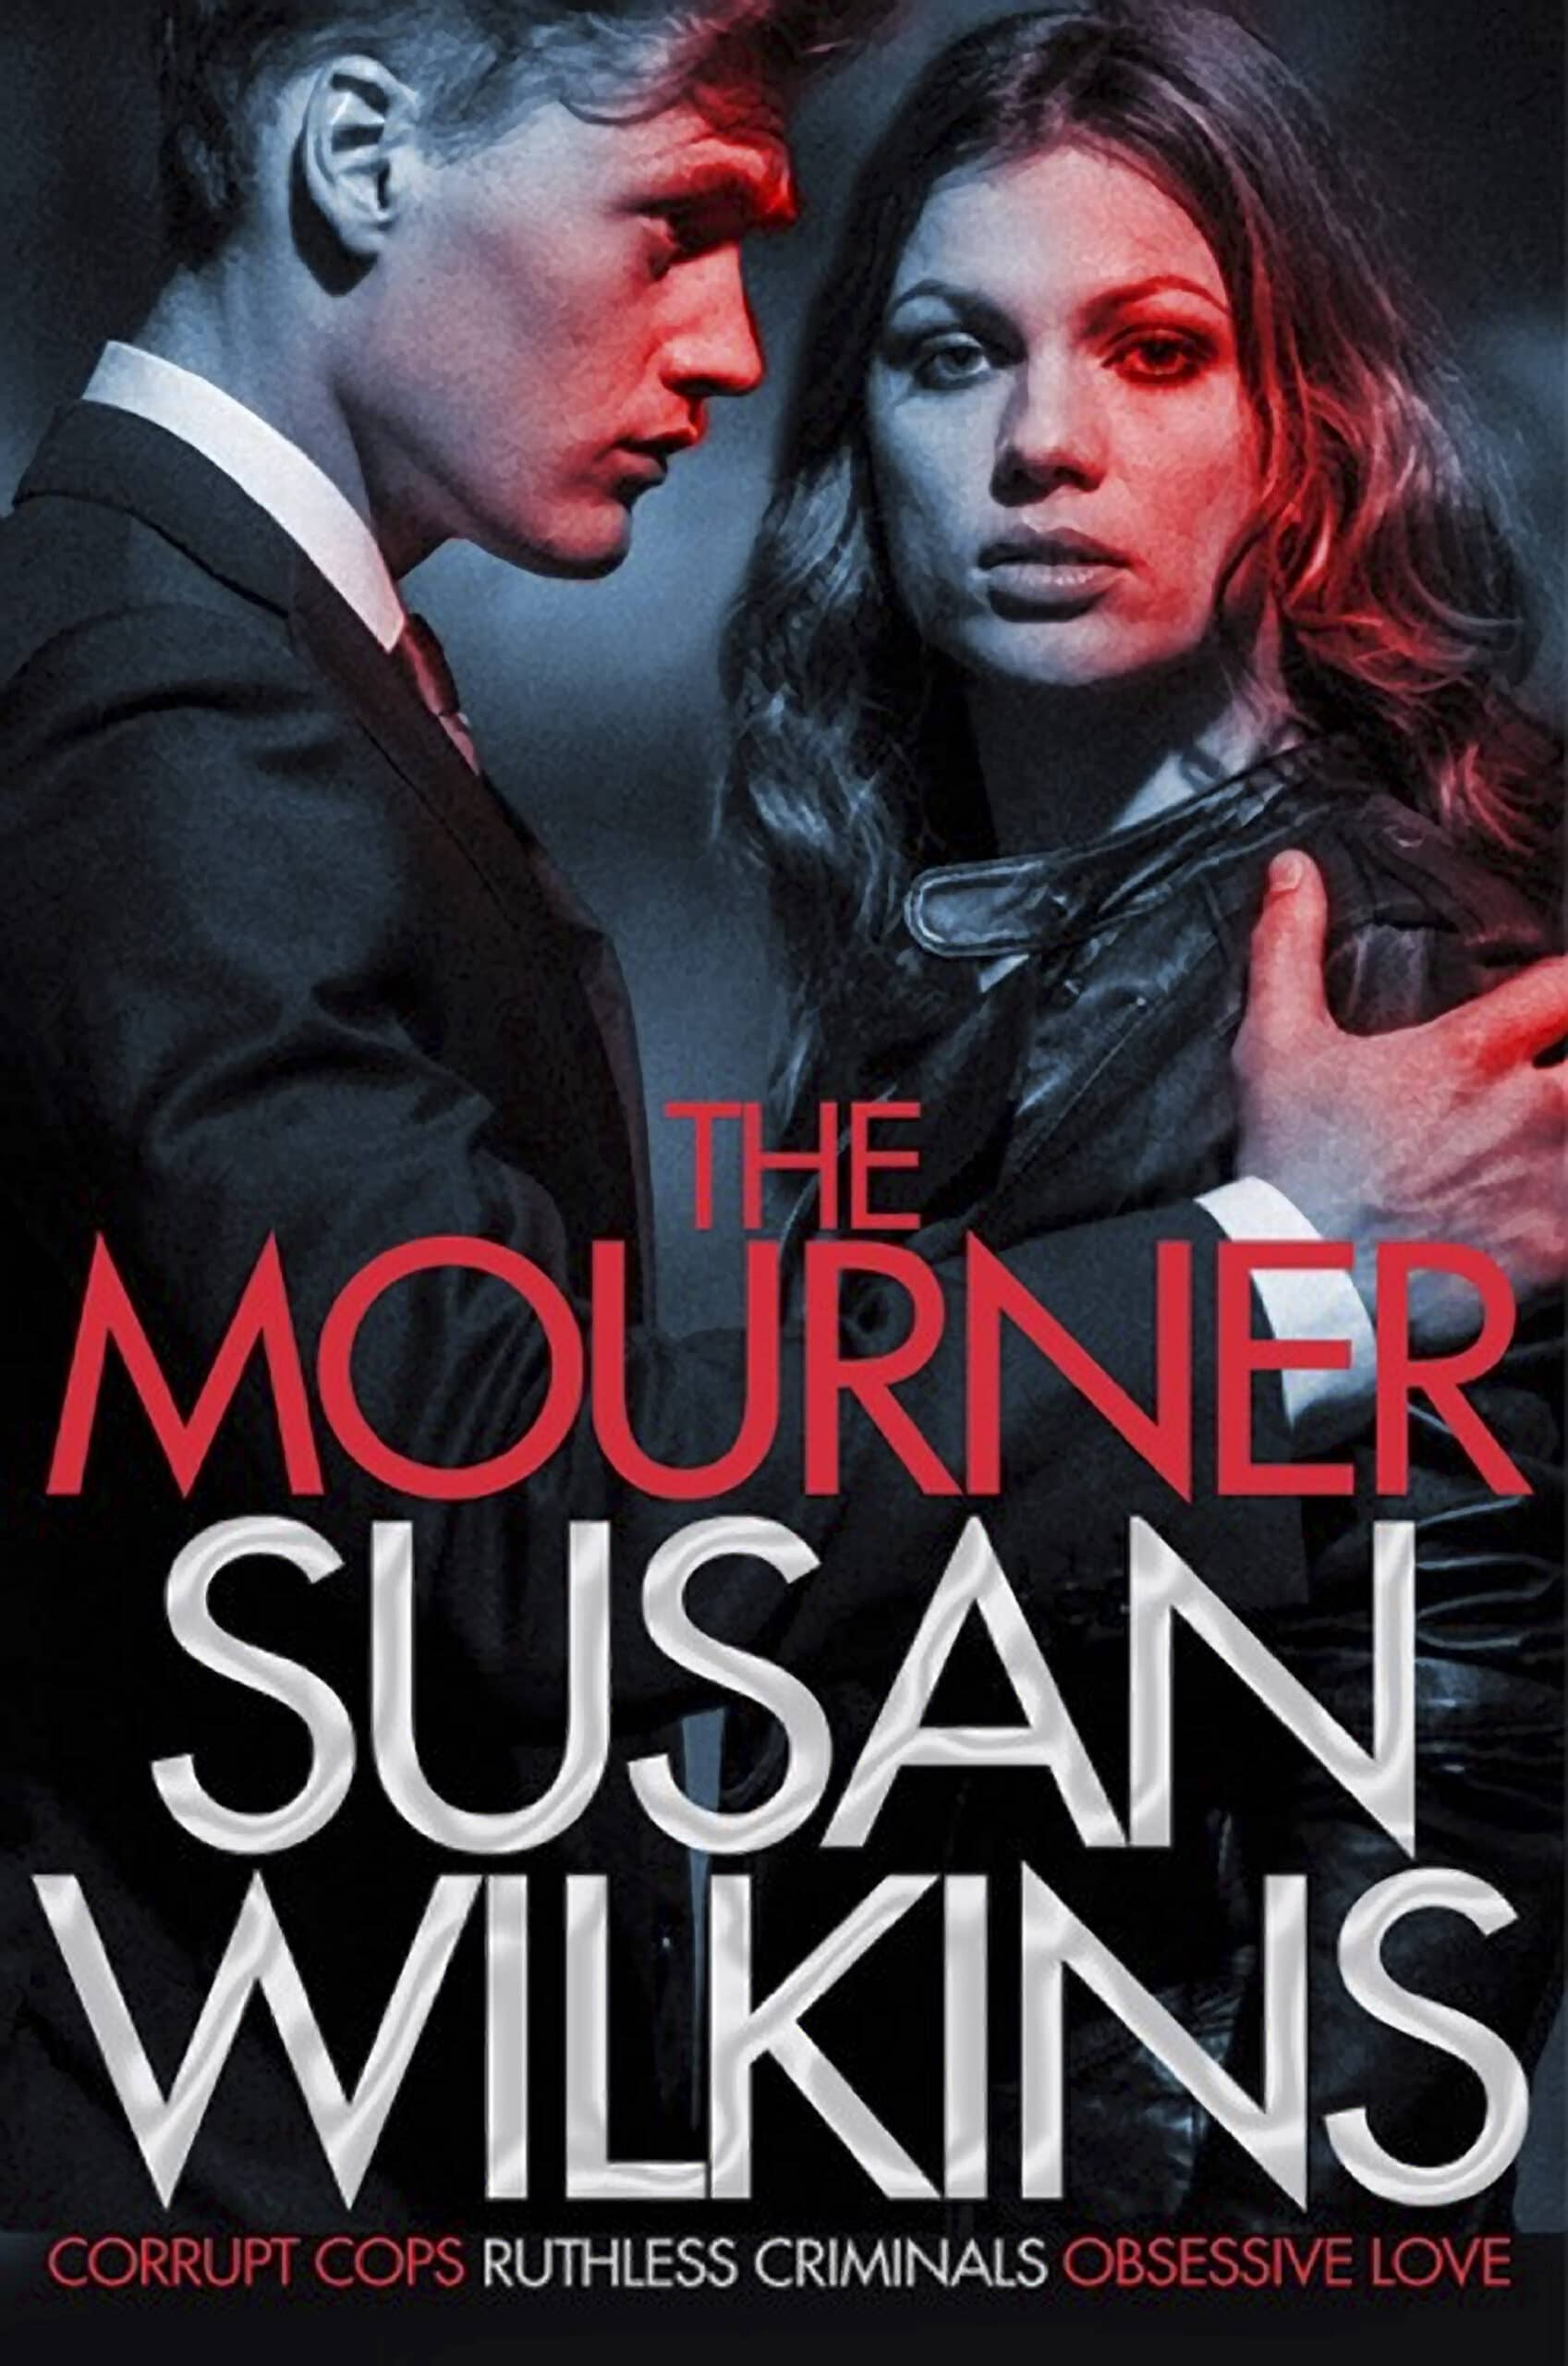 Image of book cover for The Mourner by Susan Wilkins showing a female and male figure portraying a sense of threat.